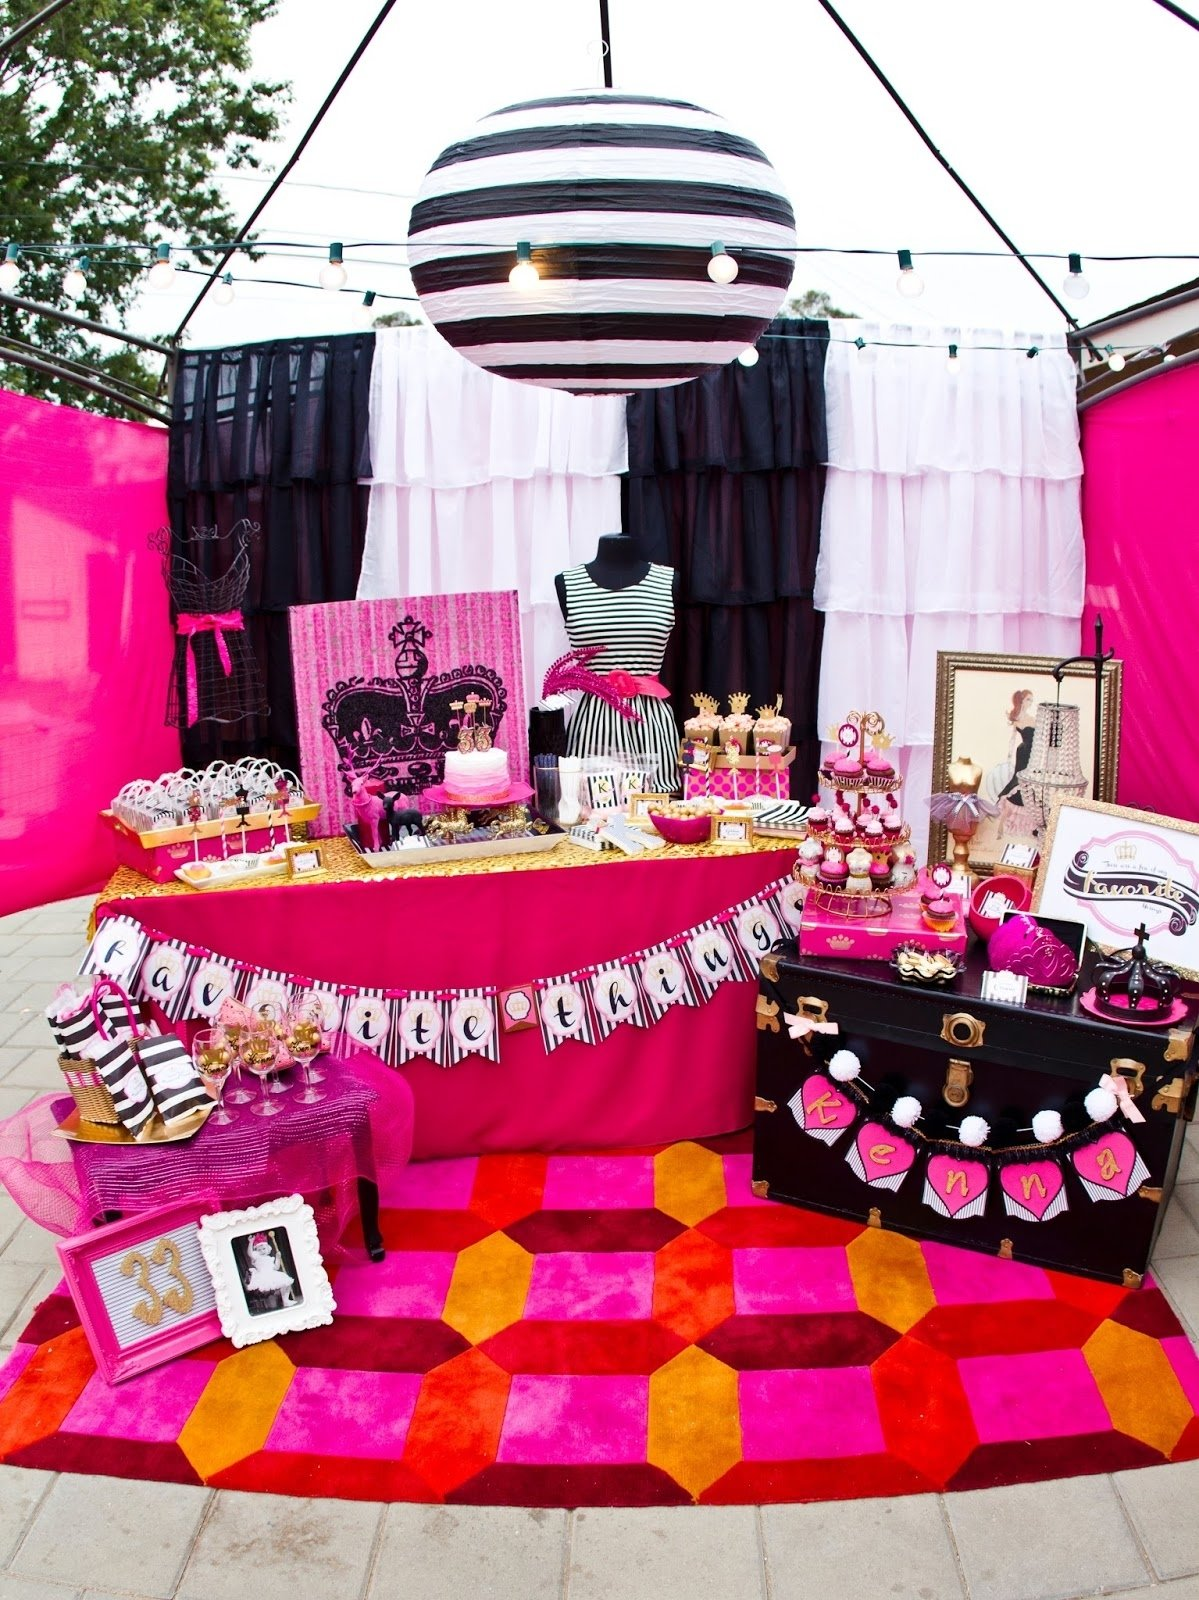 10 Lovely Birthday Celebration Ideas For Women miss party mom kennas favorite things 33rd birthday party